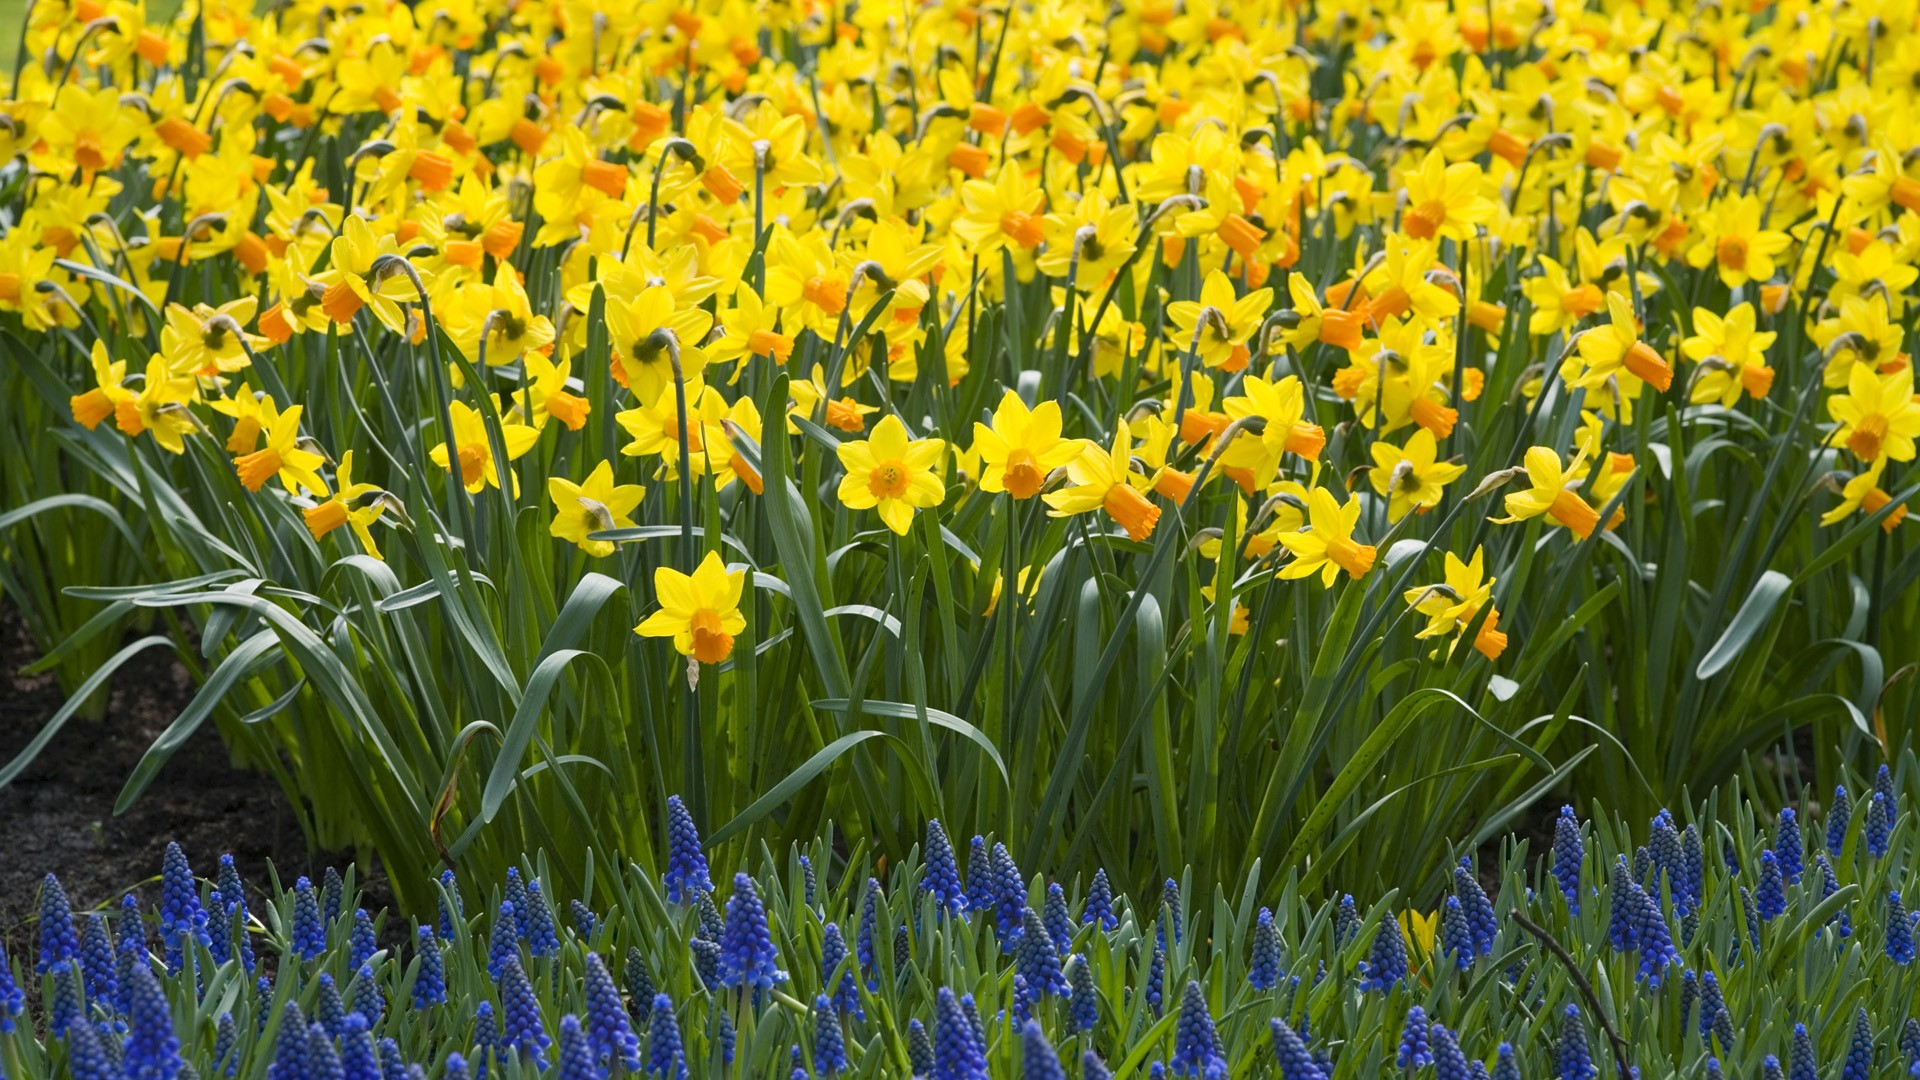 Flowers Download Nature Daffodils Wallpaper 1920x1080 Wallpoper Daffodil Flower HD Wallpaper | Garden | Pinterest